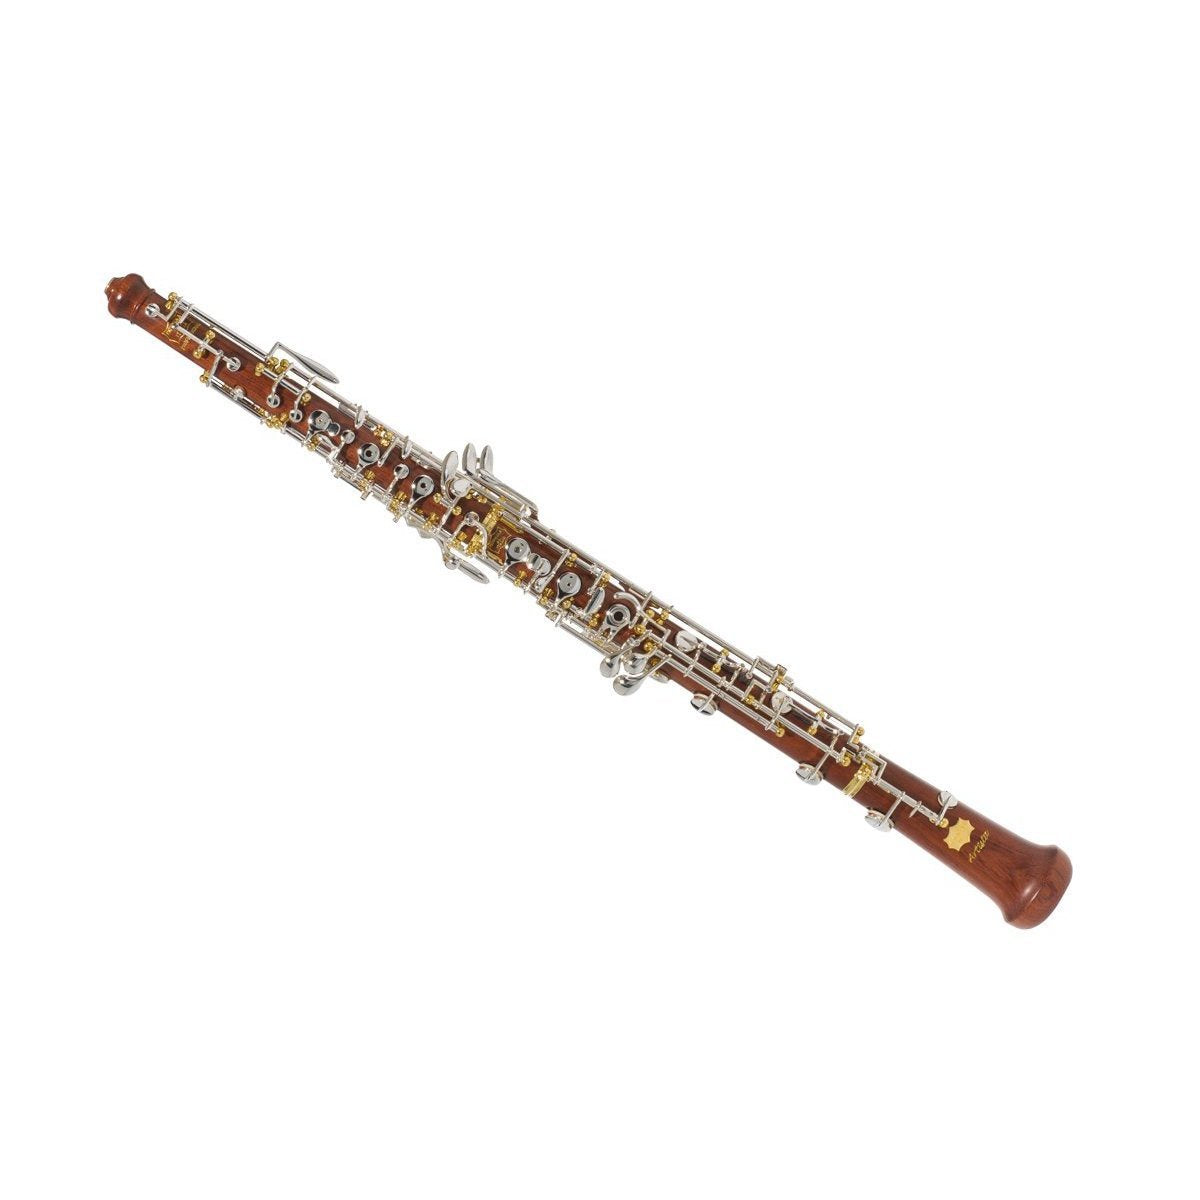 Patricola - Artista 4.0 PT.2 Full-Automatic Oboe (Rosewood with Silver-Plated Keys)